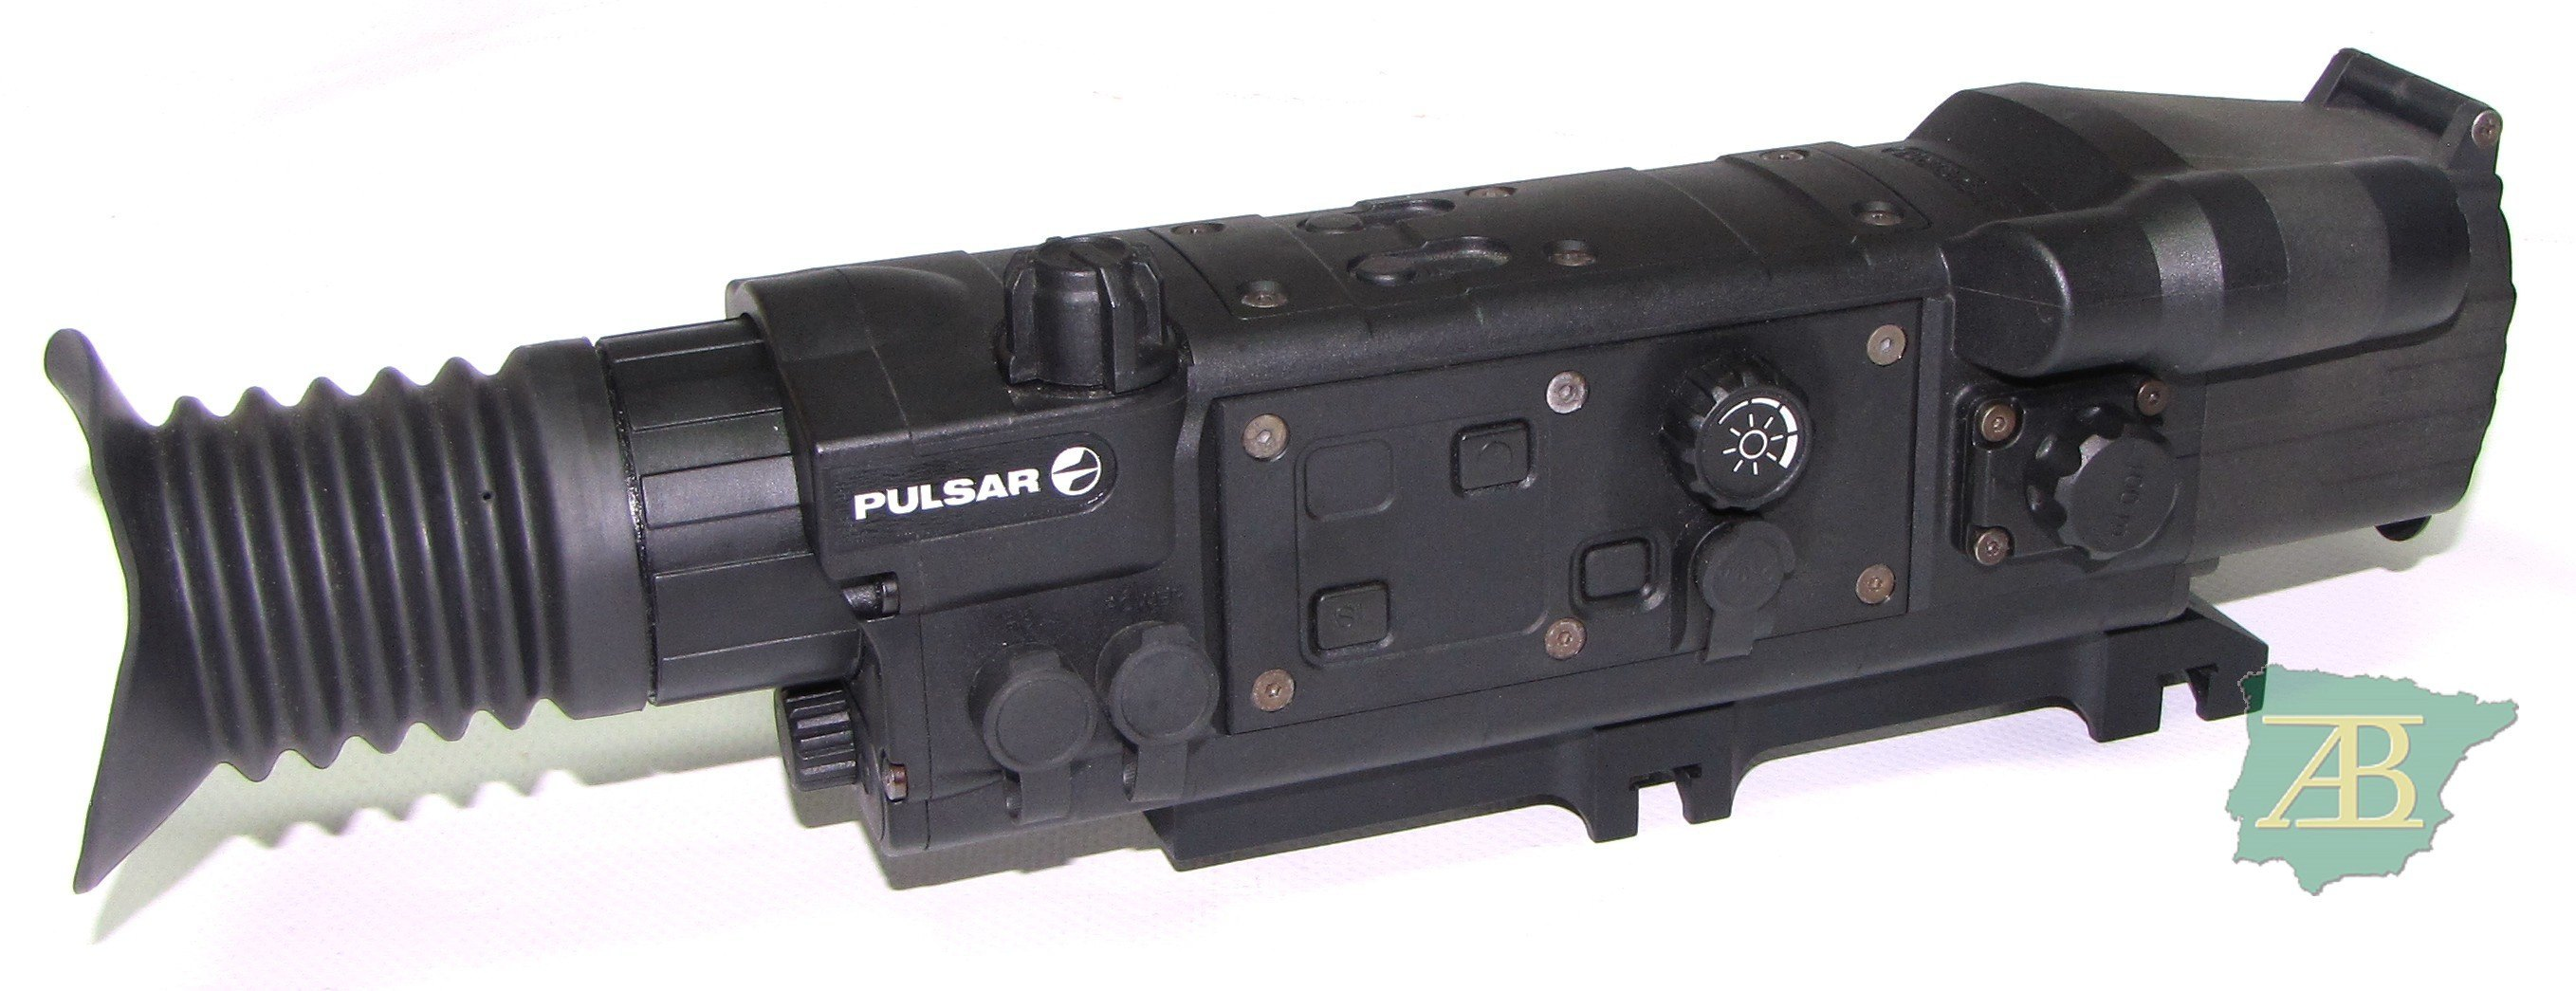 VISOR NOCTURNO DIGITAL PULSAR DIGISIGHT N550 Ref. REP2019/663